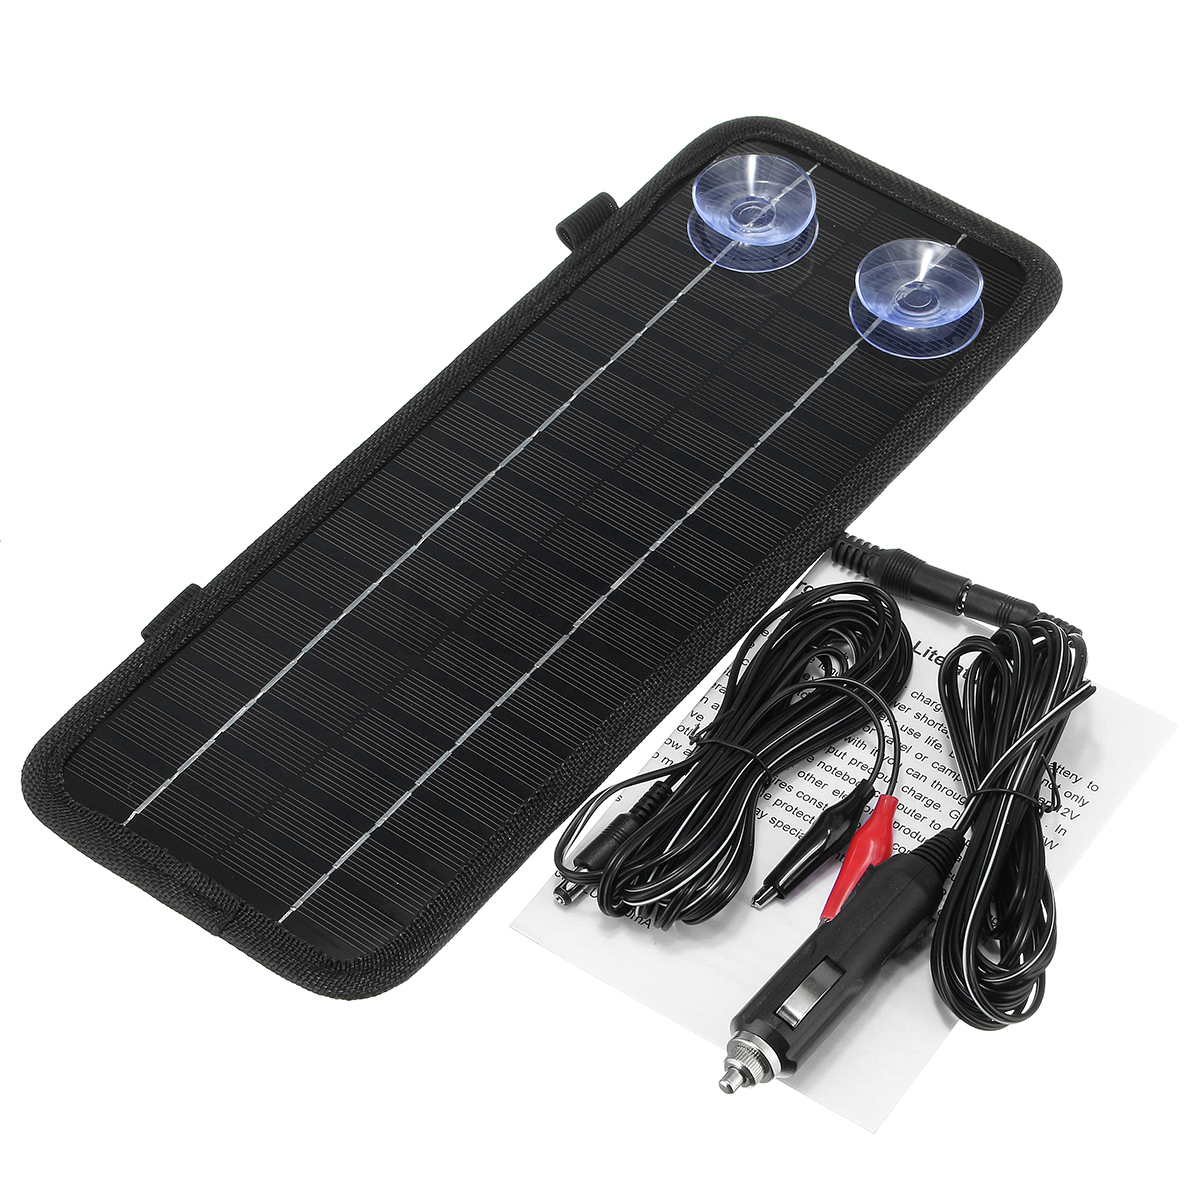 11 Essential Items as well 12v Solar Battery Charger 5w furthermore 200003575 as well RCT Axpert 5kVA Pure Sine Wave Inverter MKS 5K 48V in addition Megazine. on 15w solar battery charger